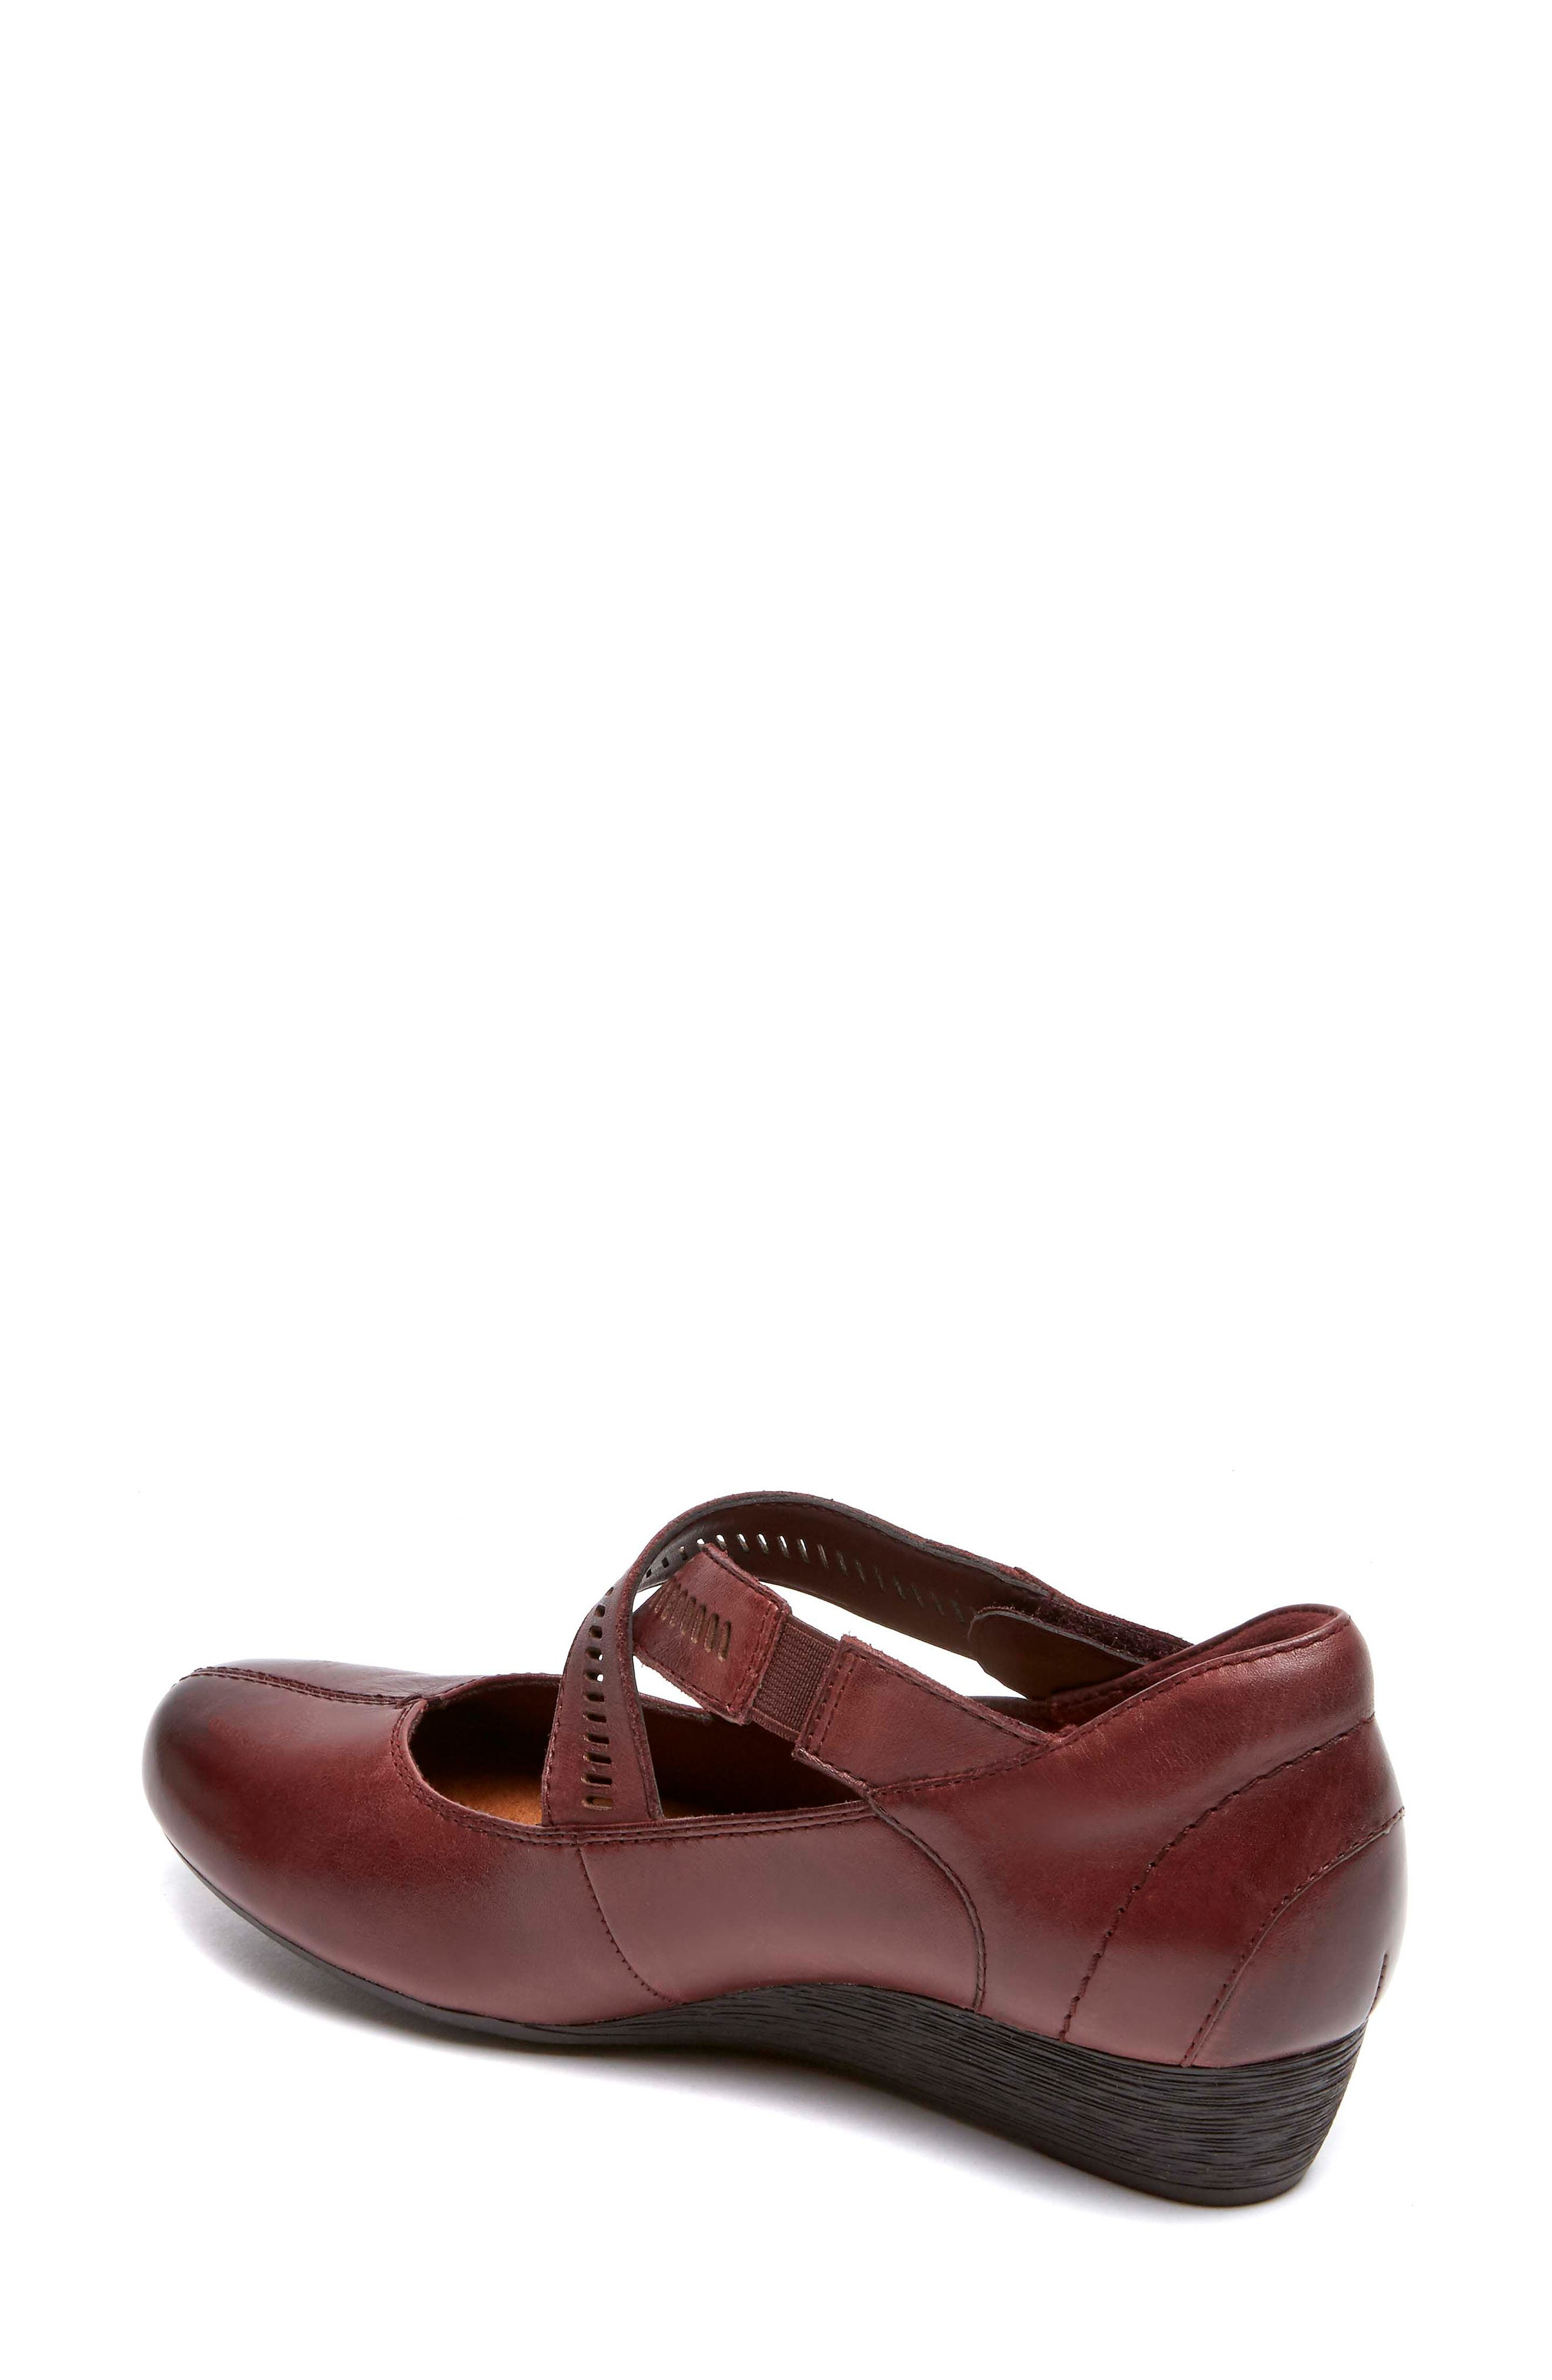 'Janet' Mary Jane Wedge,                             Alternate thumbnail 2, color,                             MERLOT LEATHER